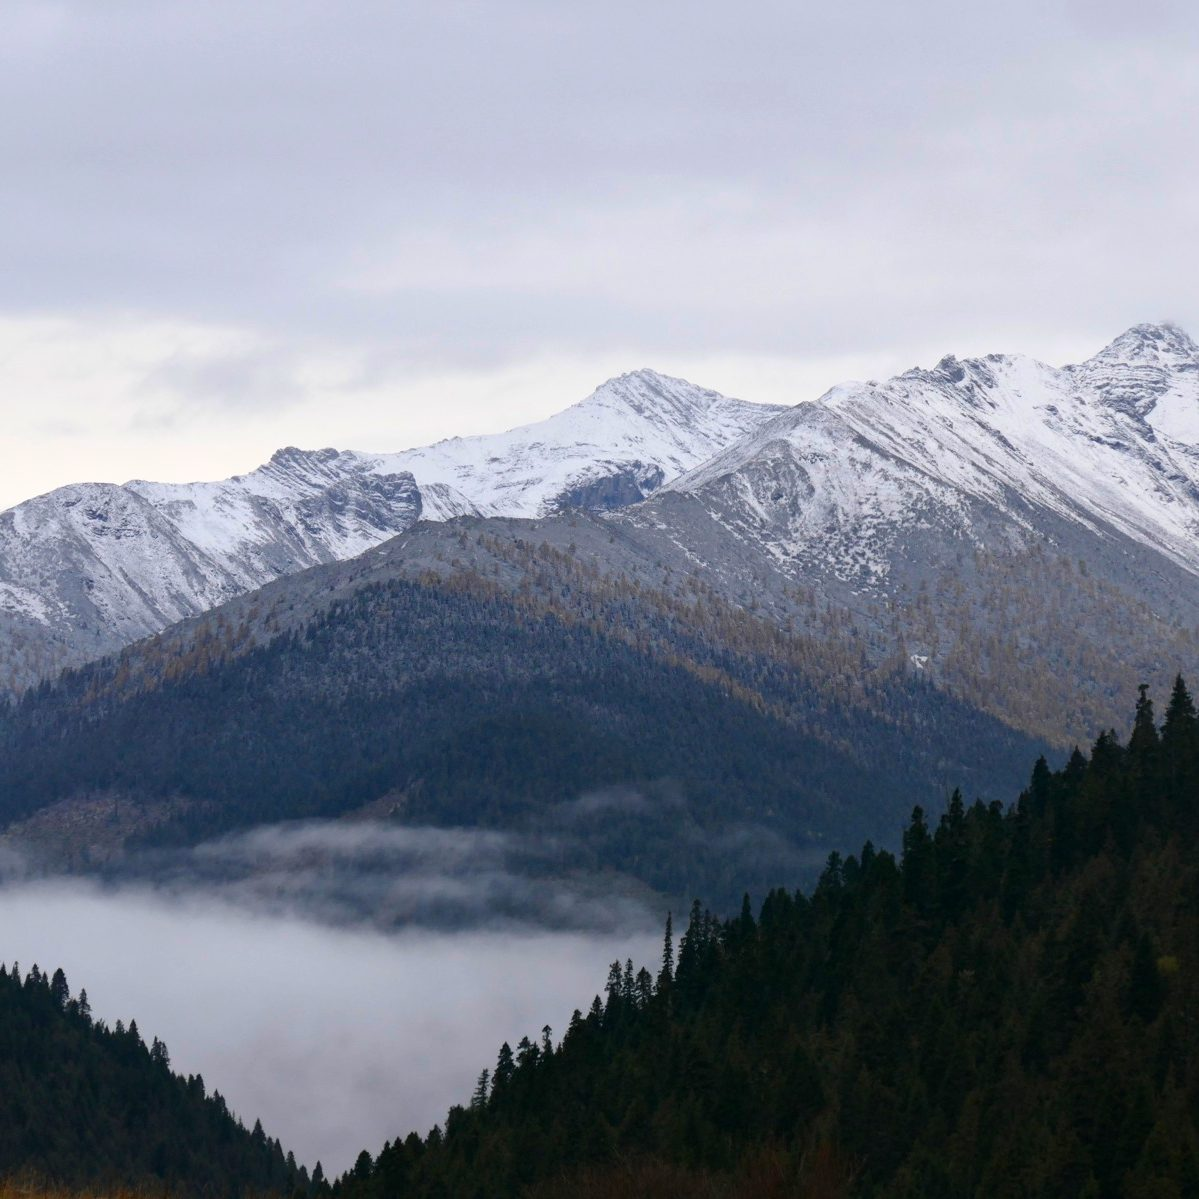 Snowy peaks are visible from Mengbi Shan Pass. Noah Strycker